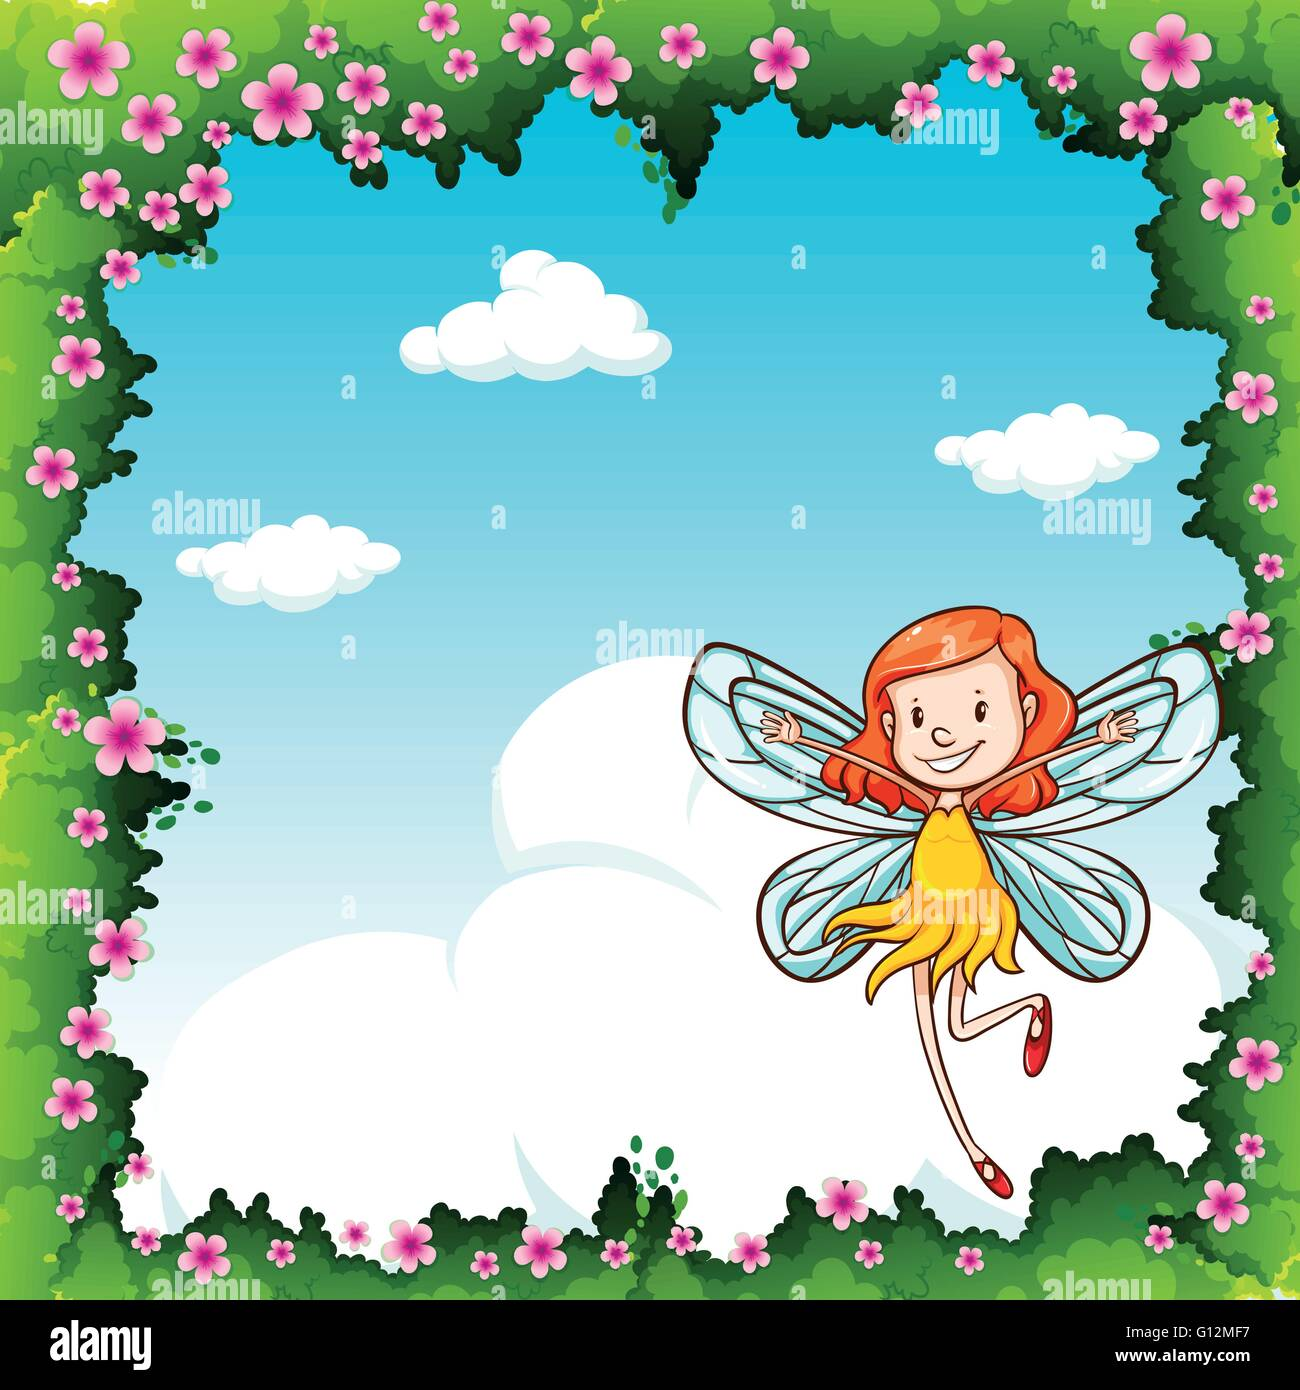 Border design with fairy flying in the sky illustration - Stock Image